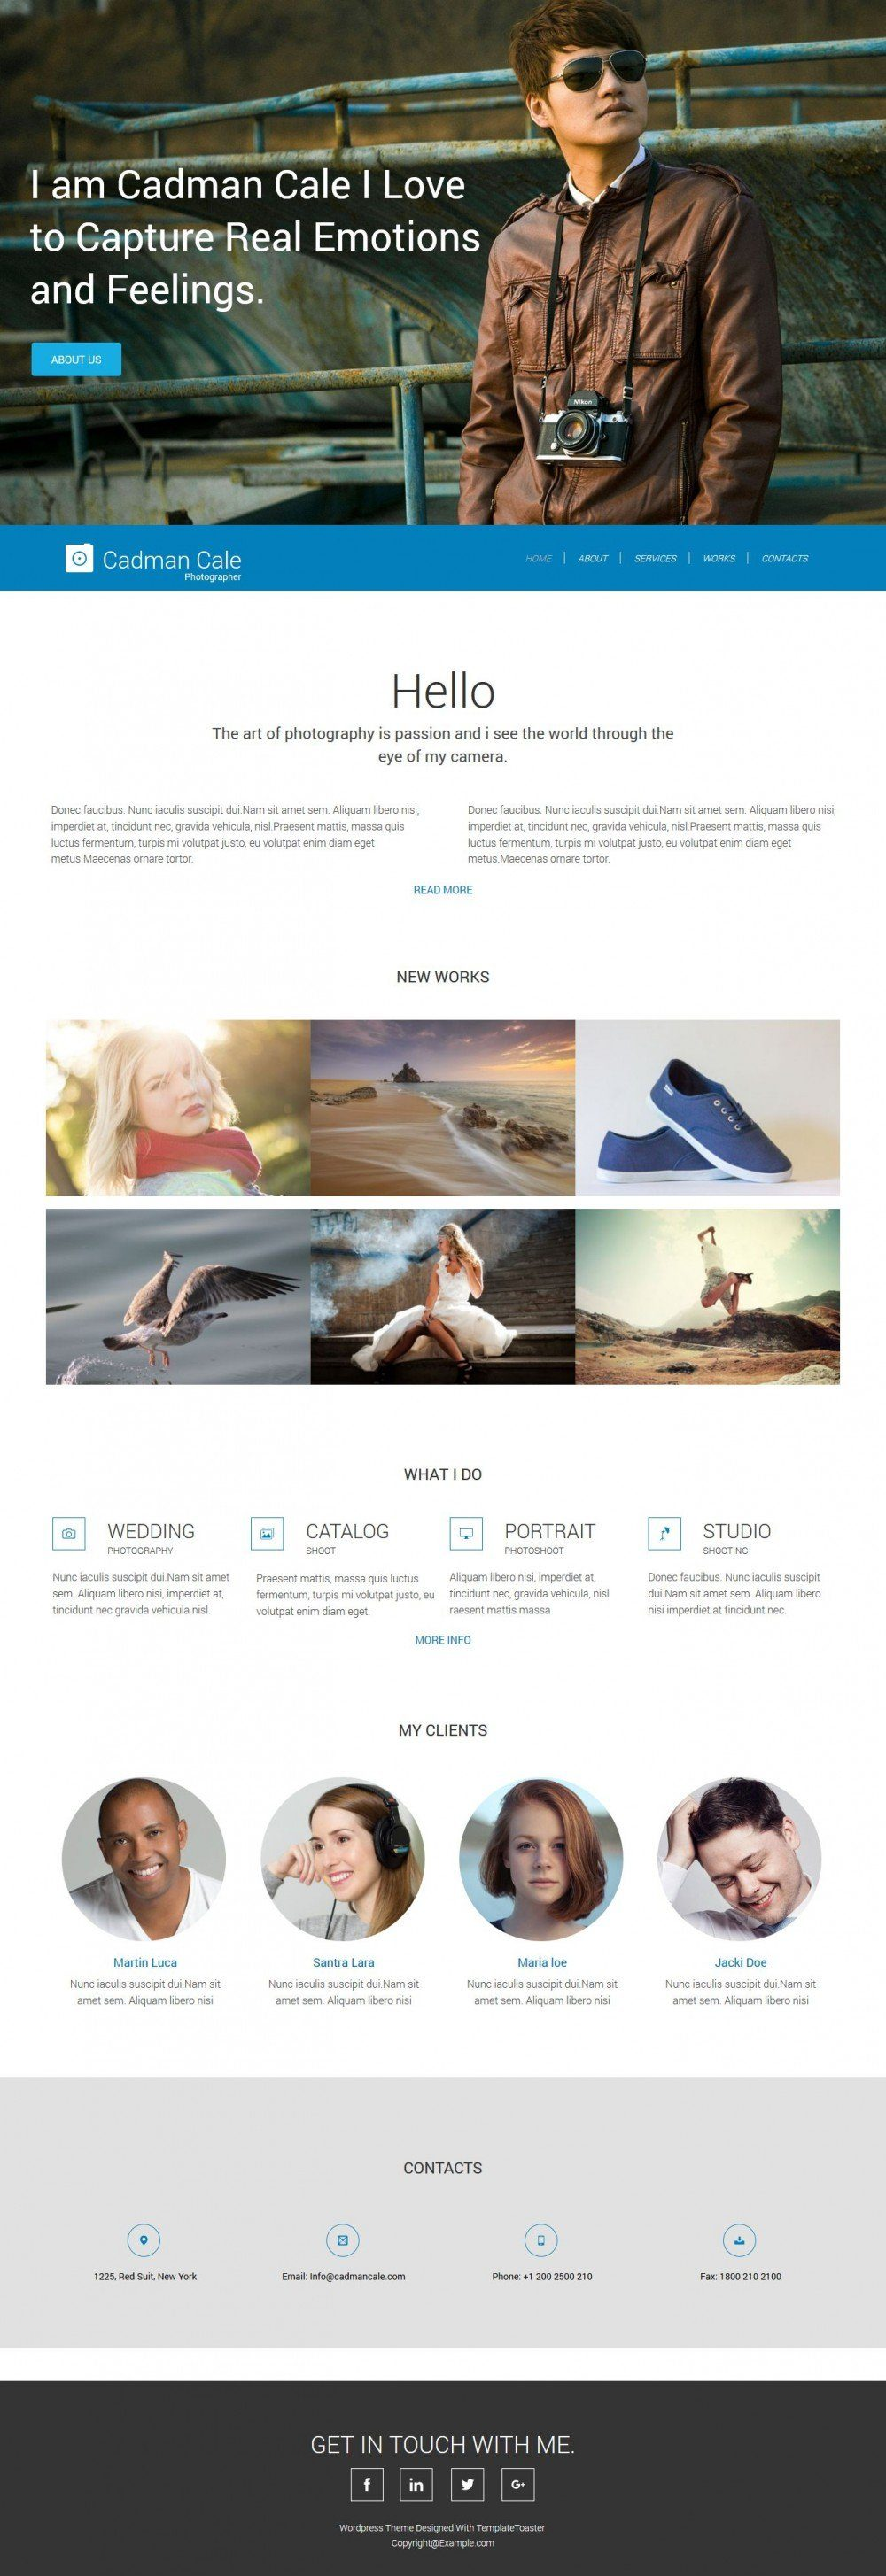 cadman cale photography drupal theme